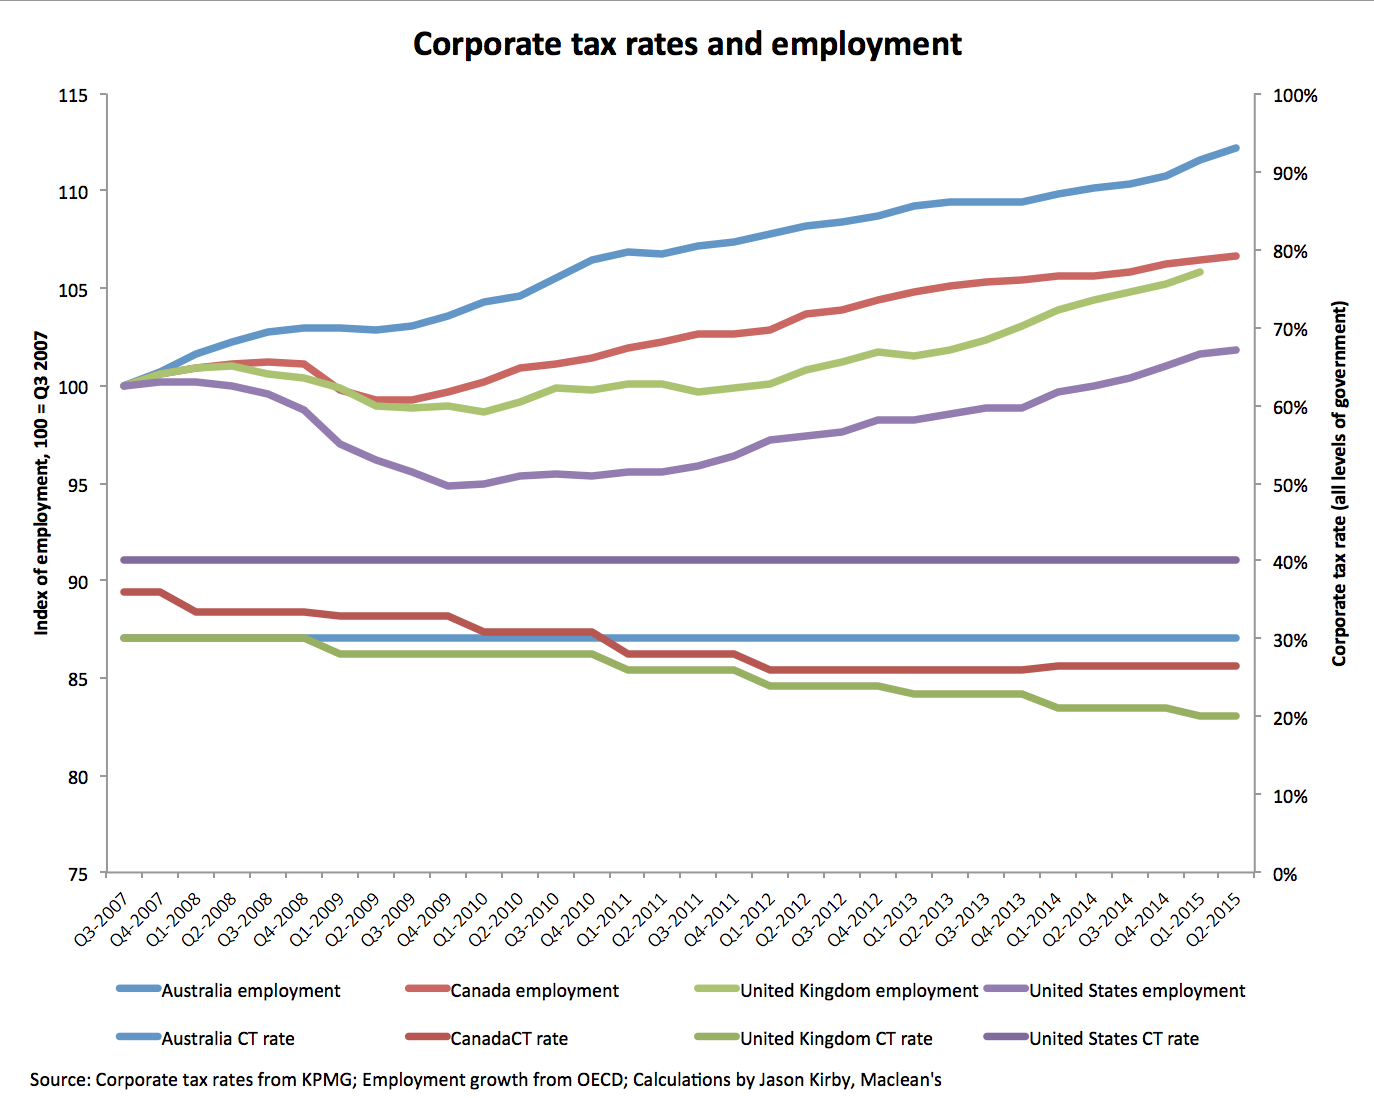 Corporate tax rates and employment